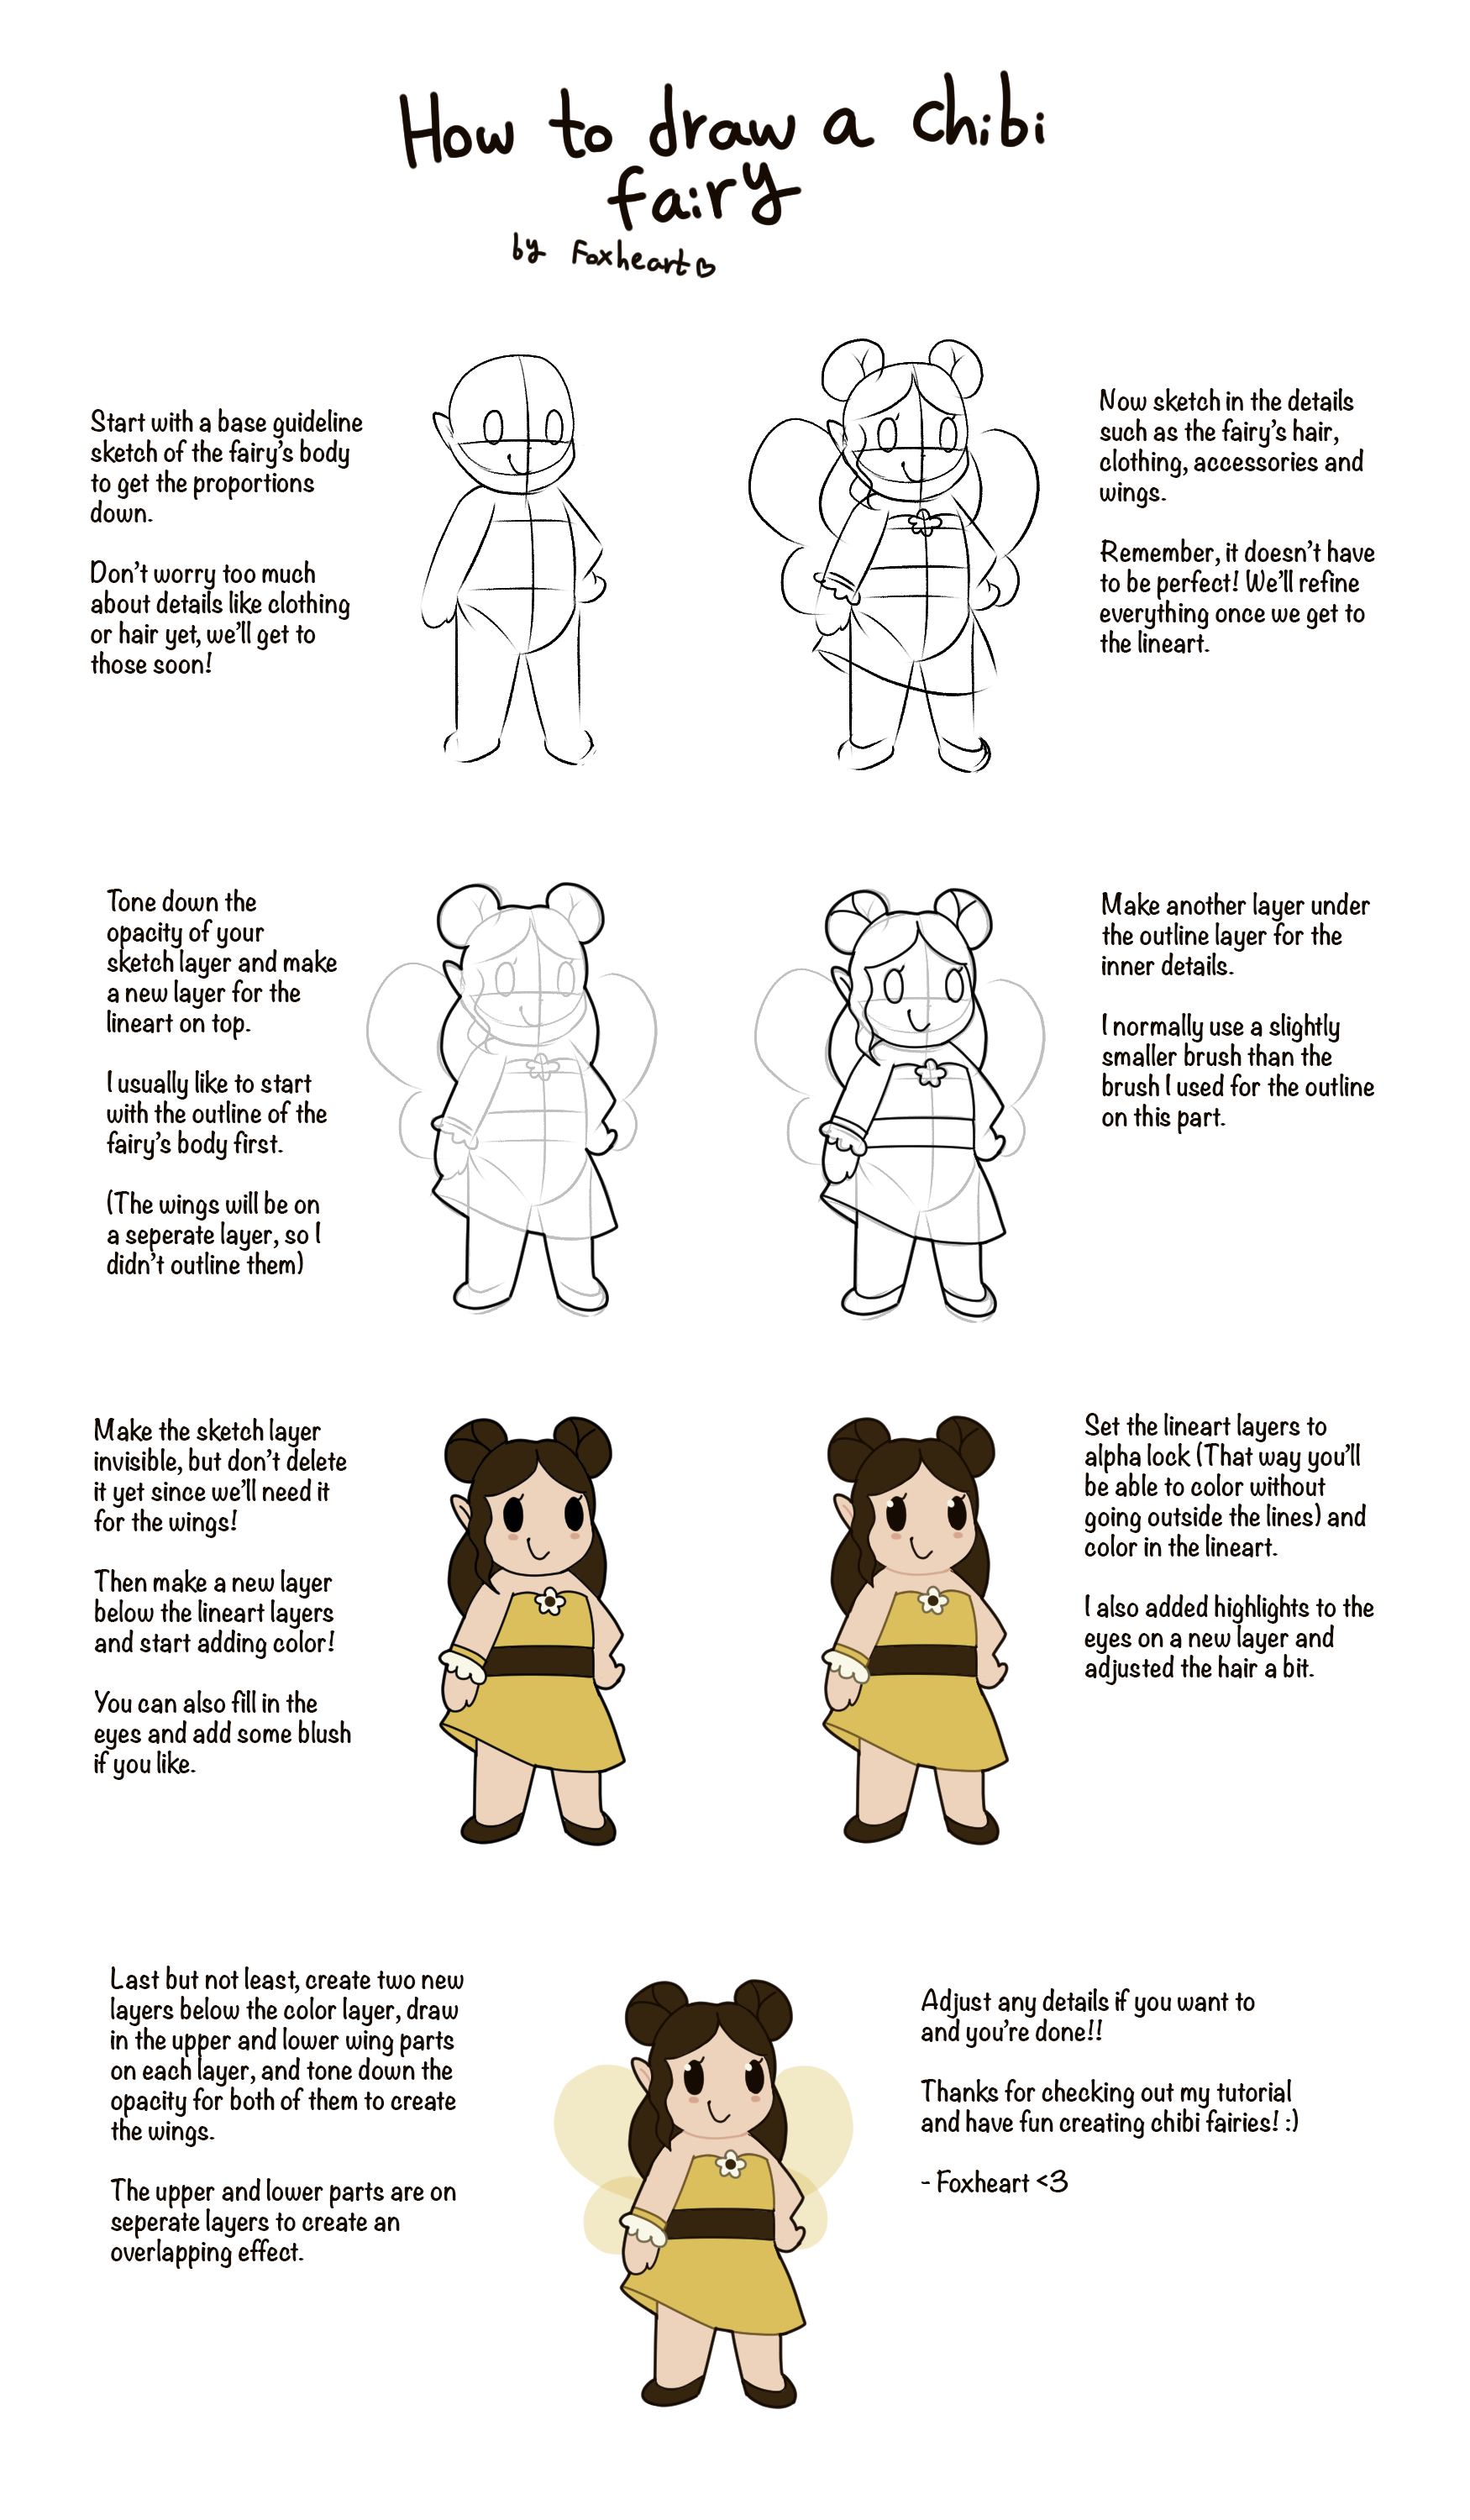 How to draw a chibi fairy tutorial